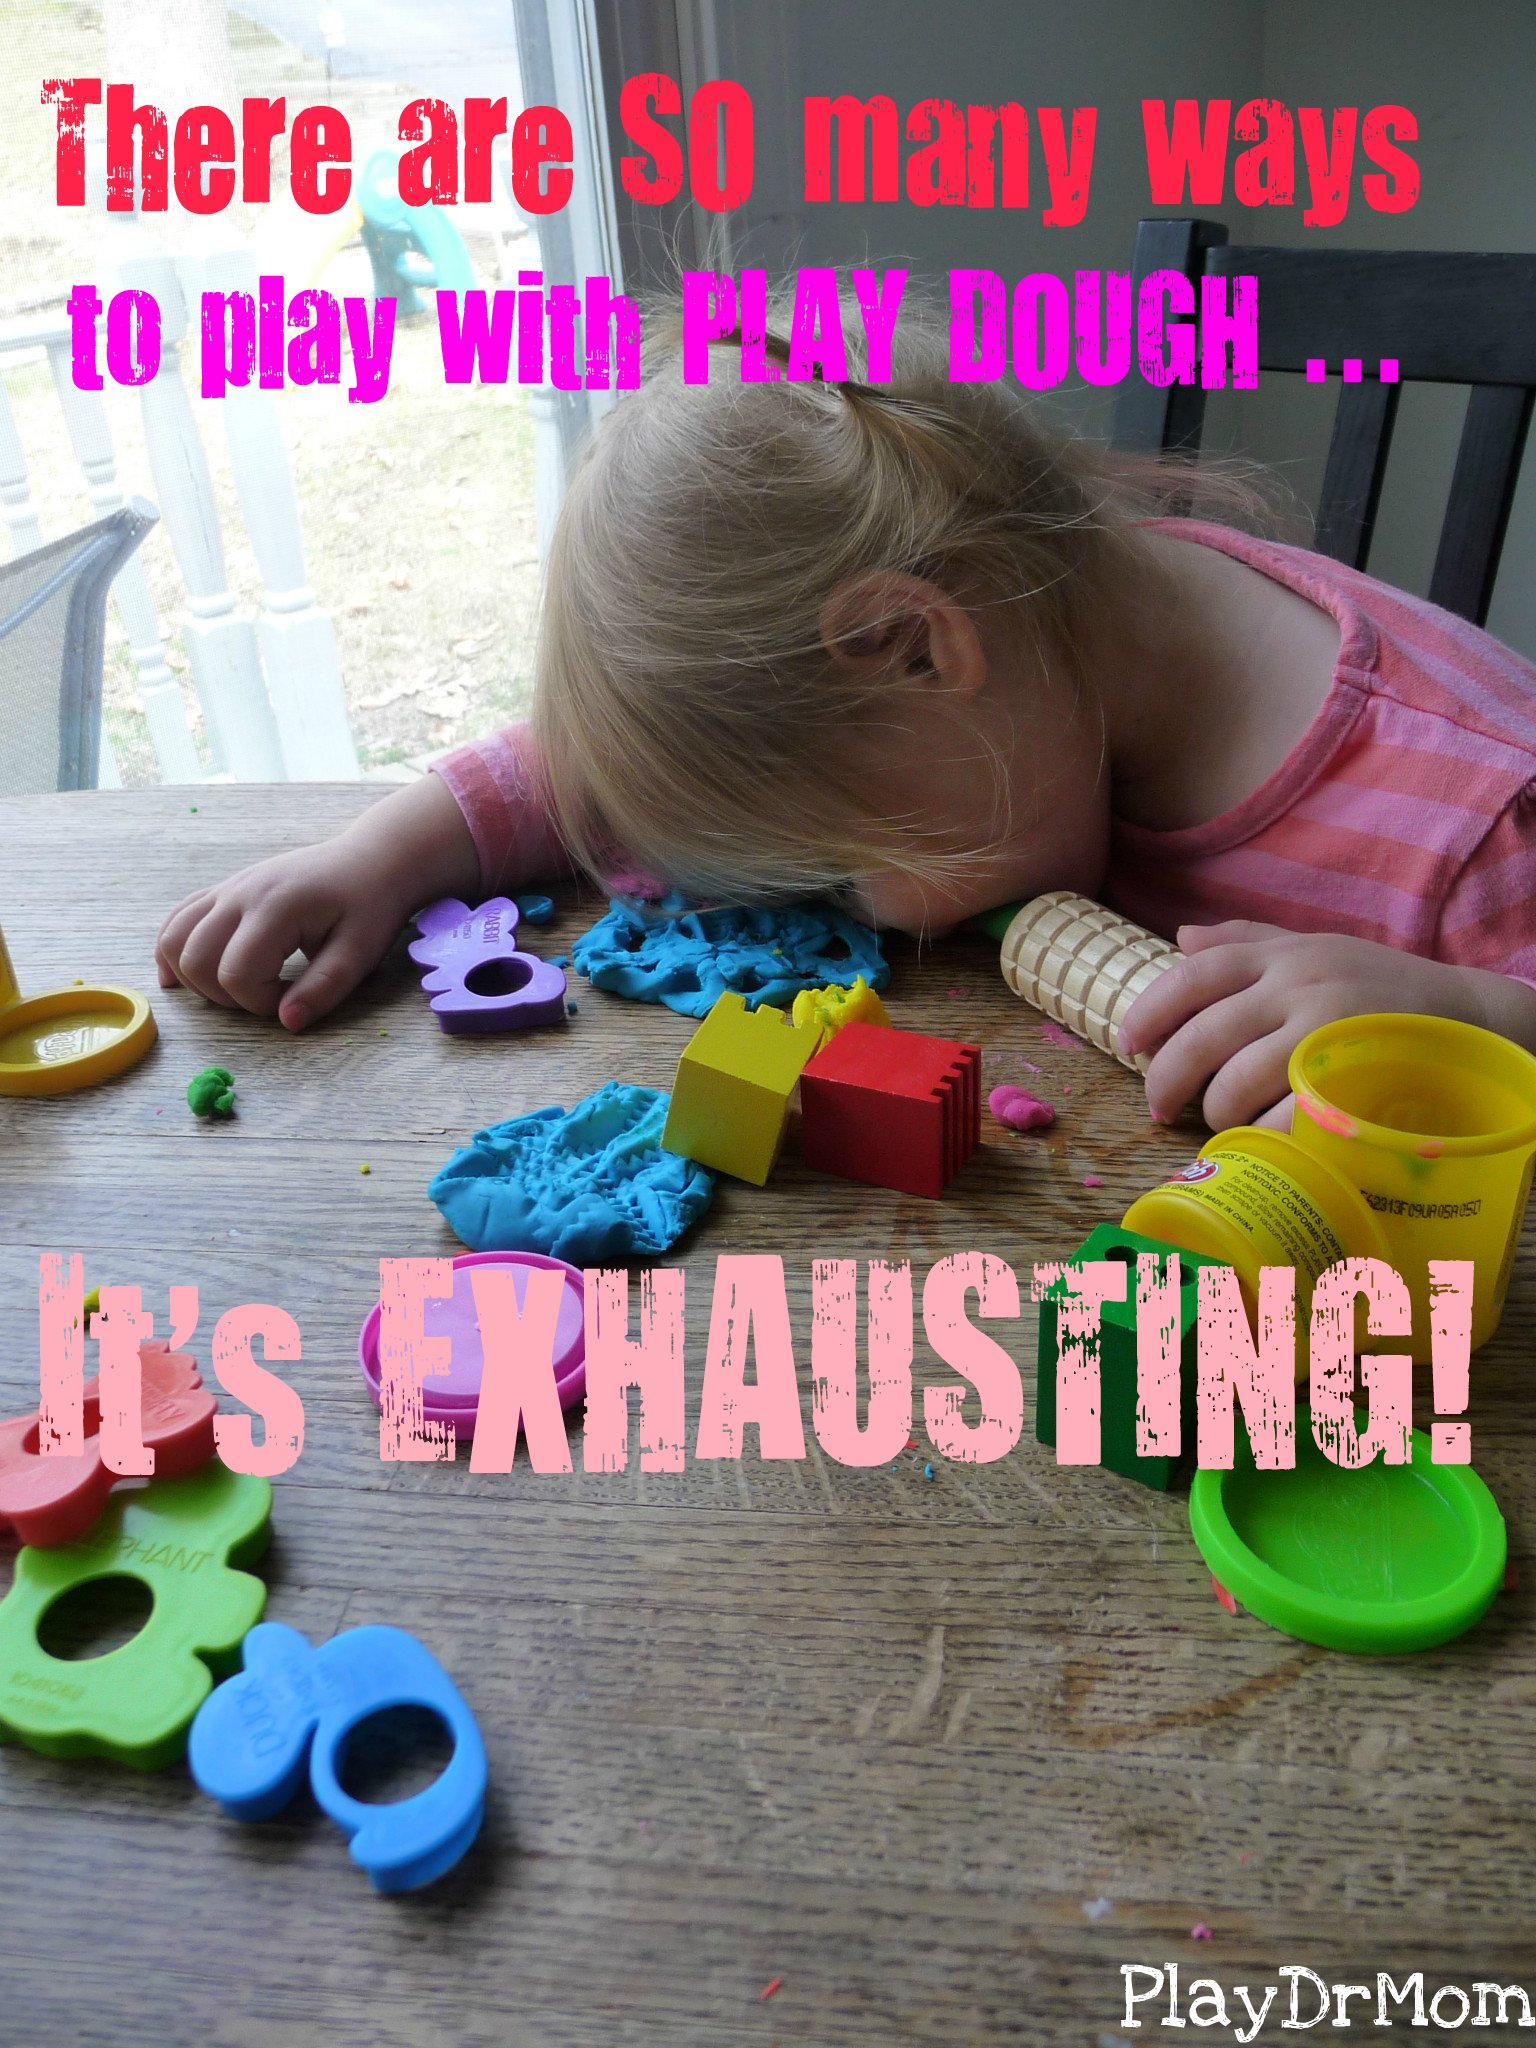 it's exhausting!